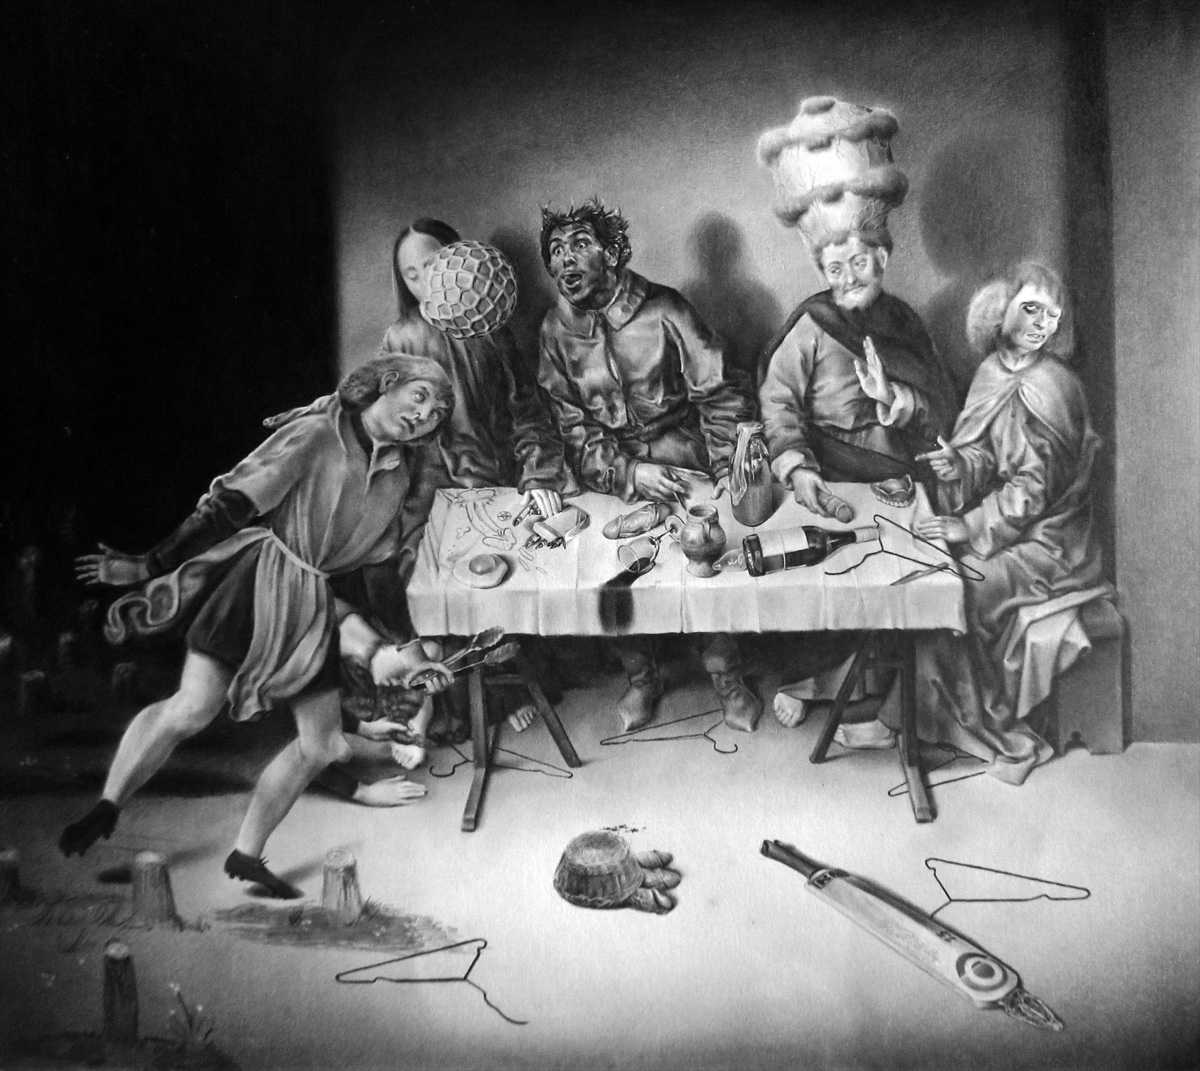 The Last Supper, Overview